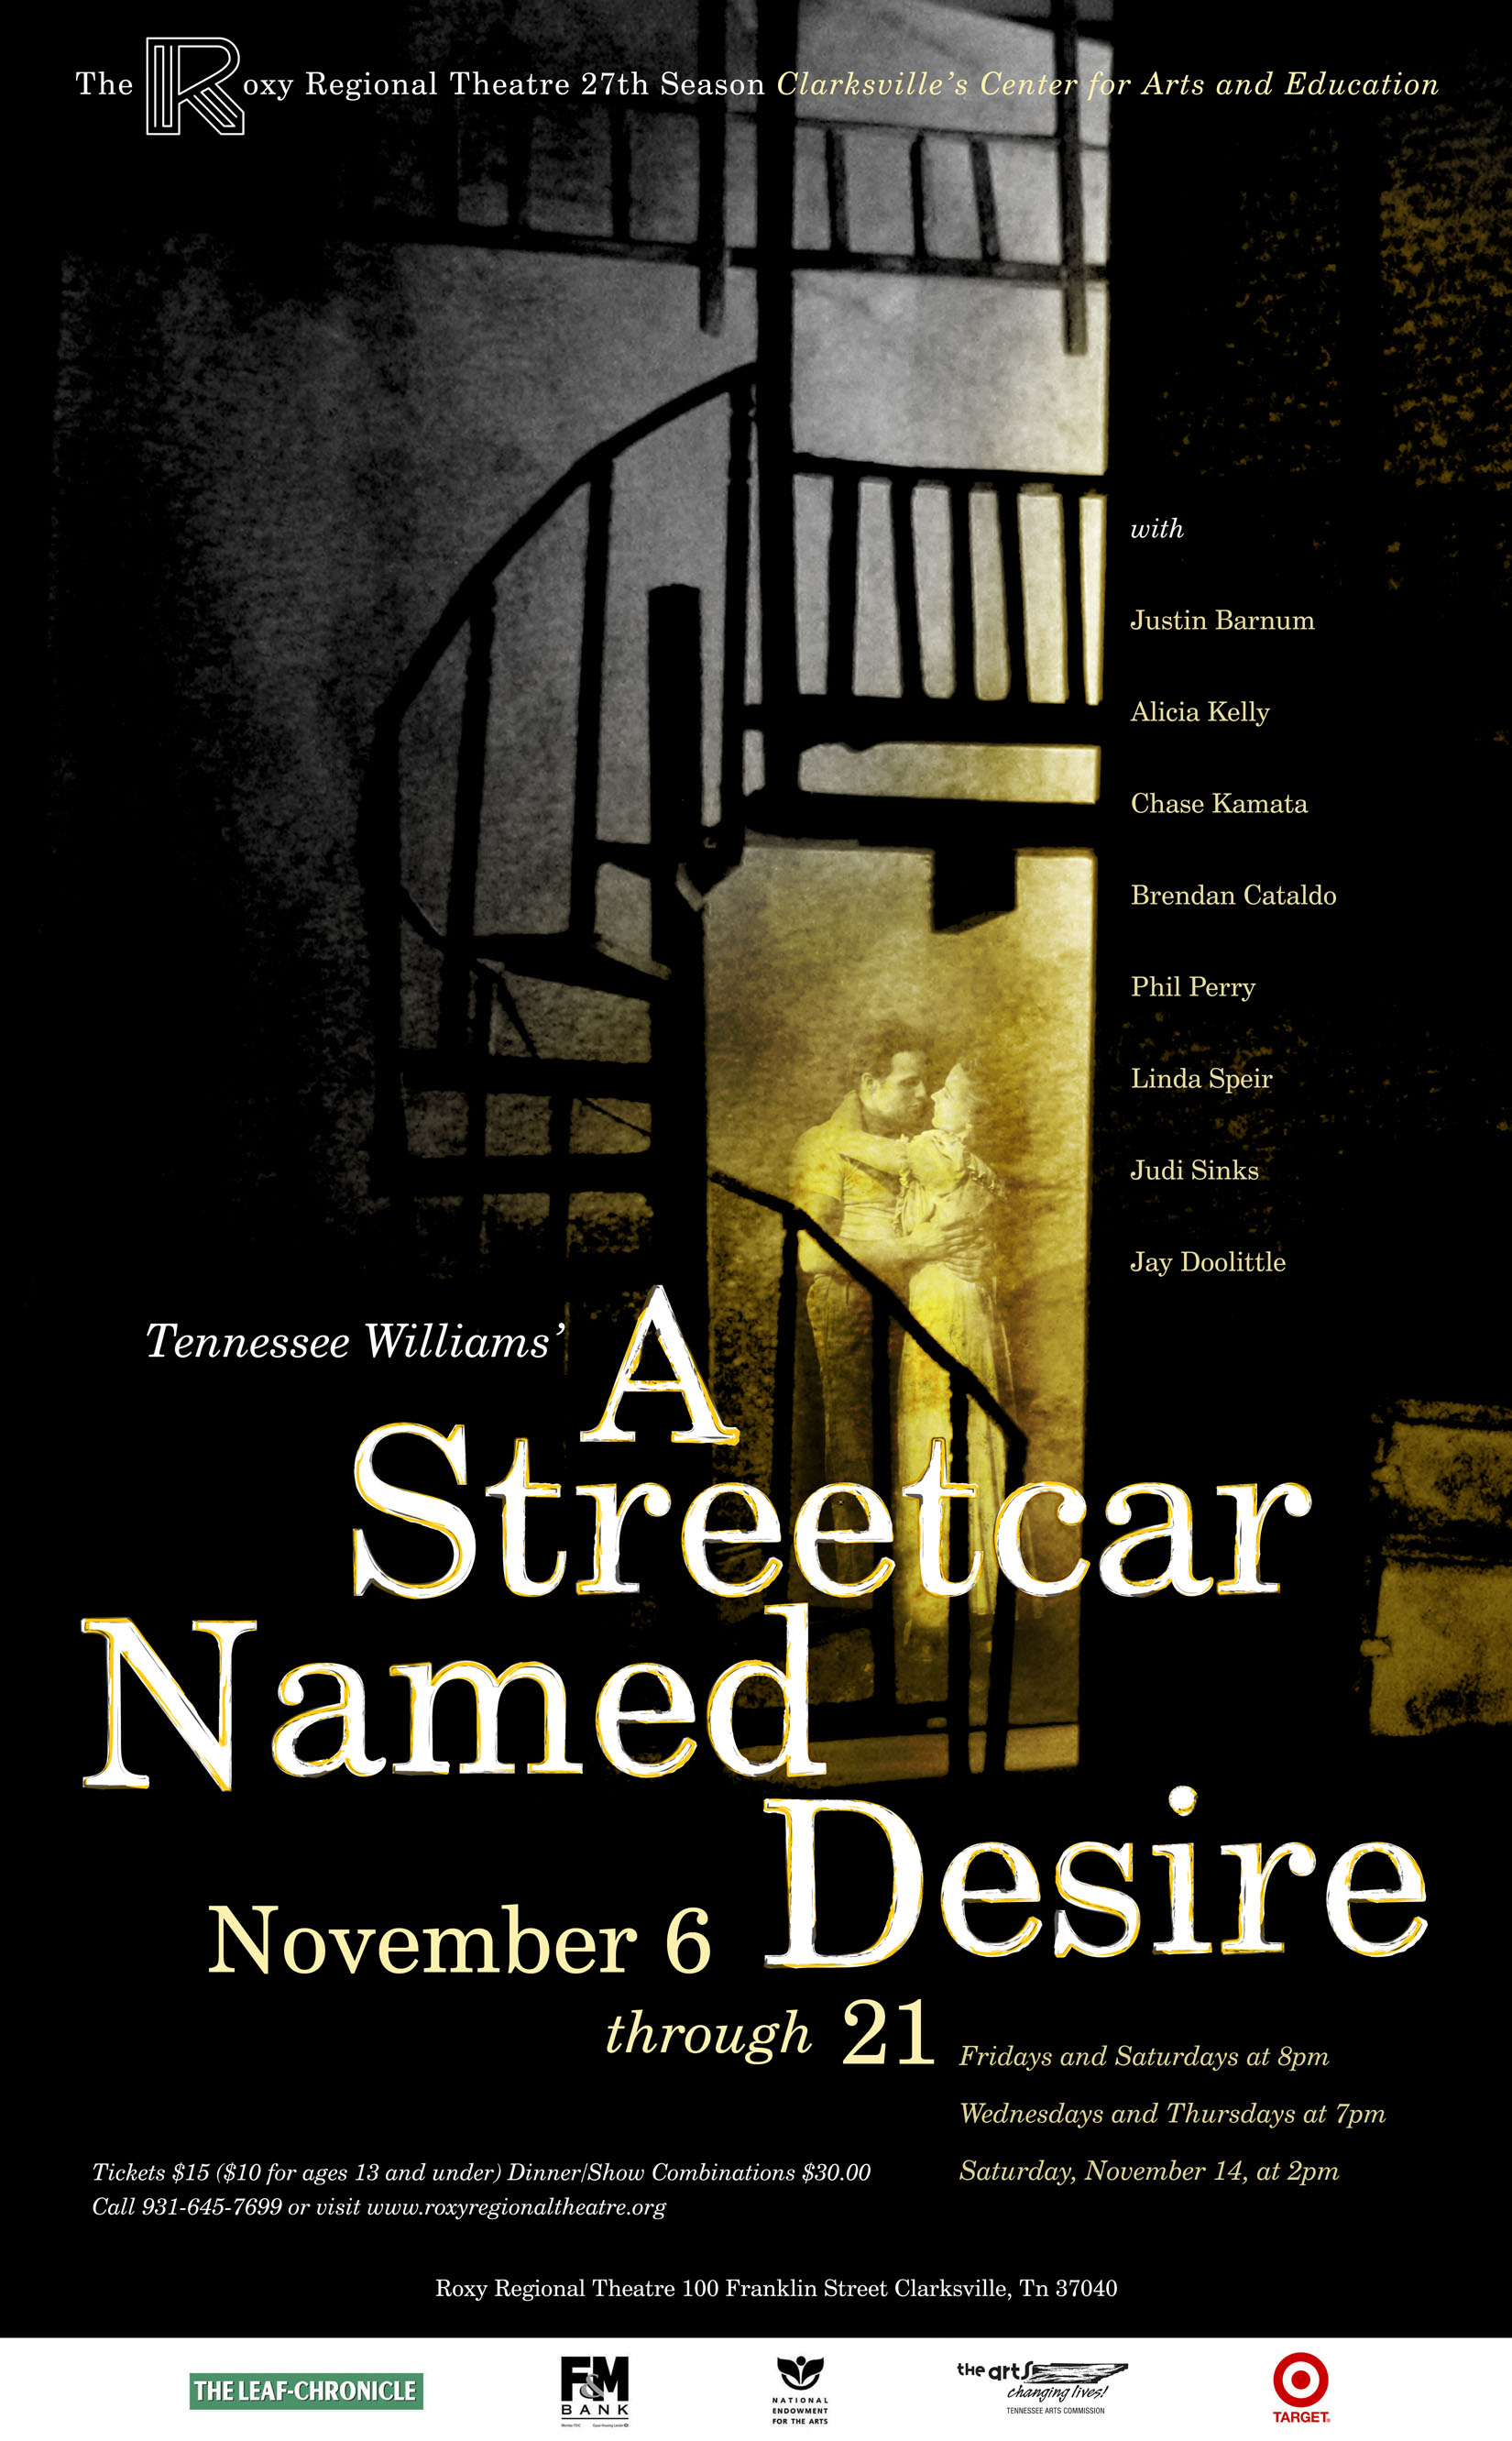 the relevance of setting in a streetcar named desire a play by tennessee williams Time and setting of tennessee williams's original work, in a production driven by the sheer variety of the musical and dance motifs, and the unique personalities of the characters the story of the fall of blanche dubois is a drama of family bonds, unrequited love, acceptance and physical force that never loses its relevance.